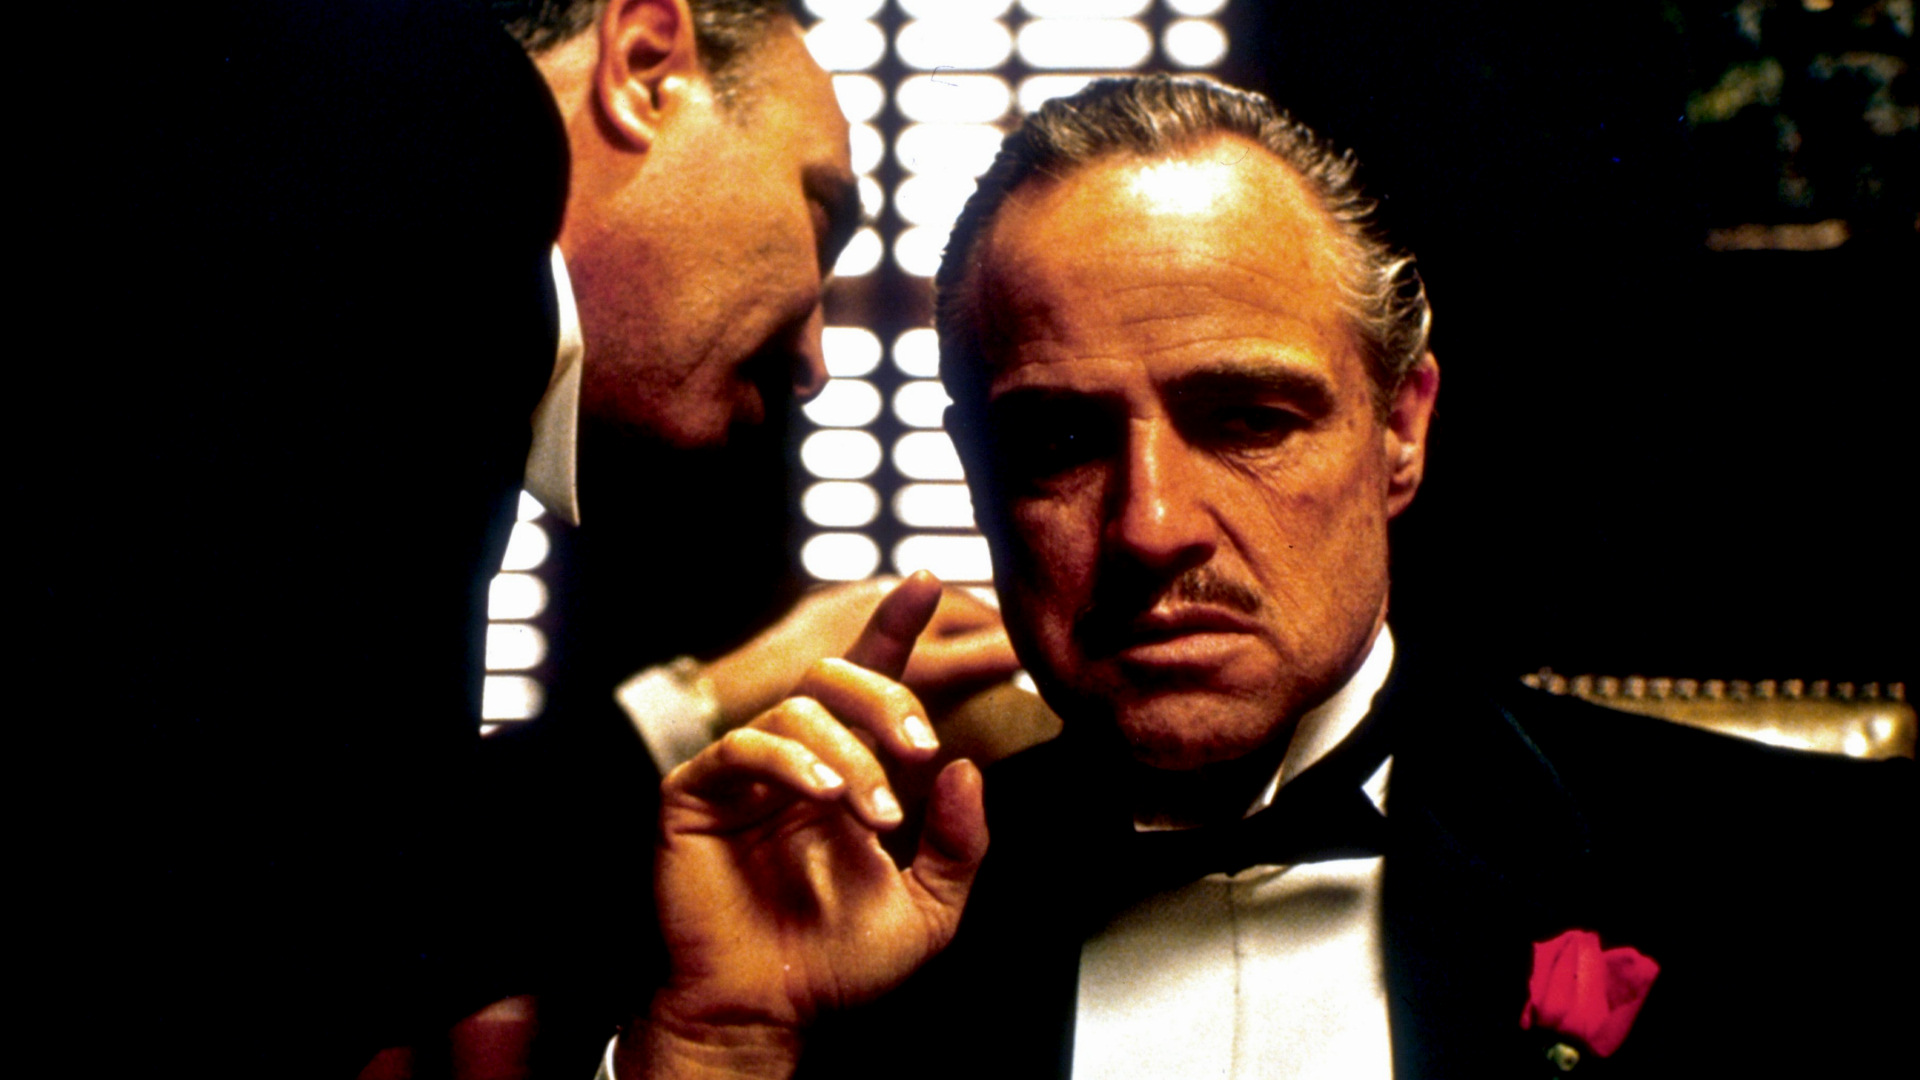 Marlon Brando won an Oscar for his role as Don Vito Corleone in The Godfather